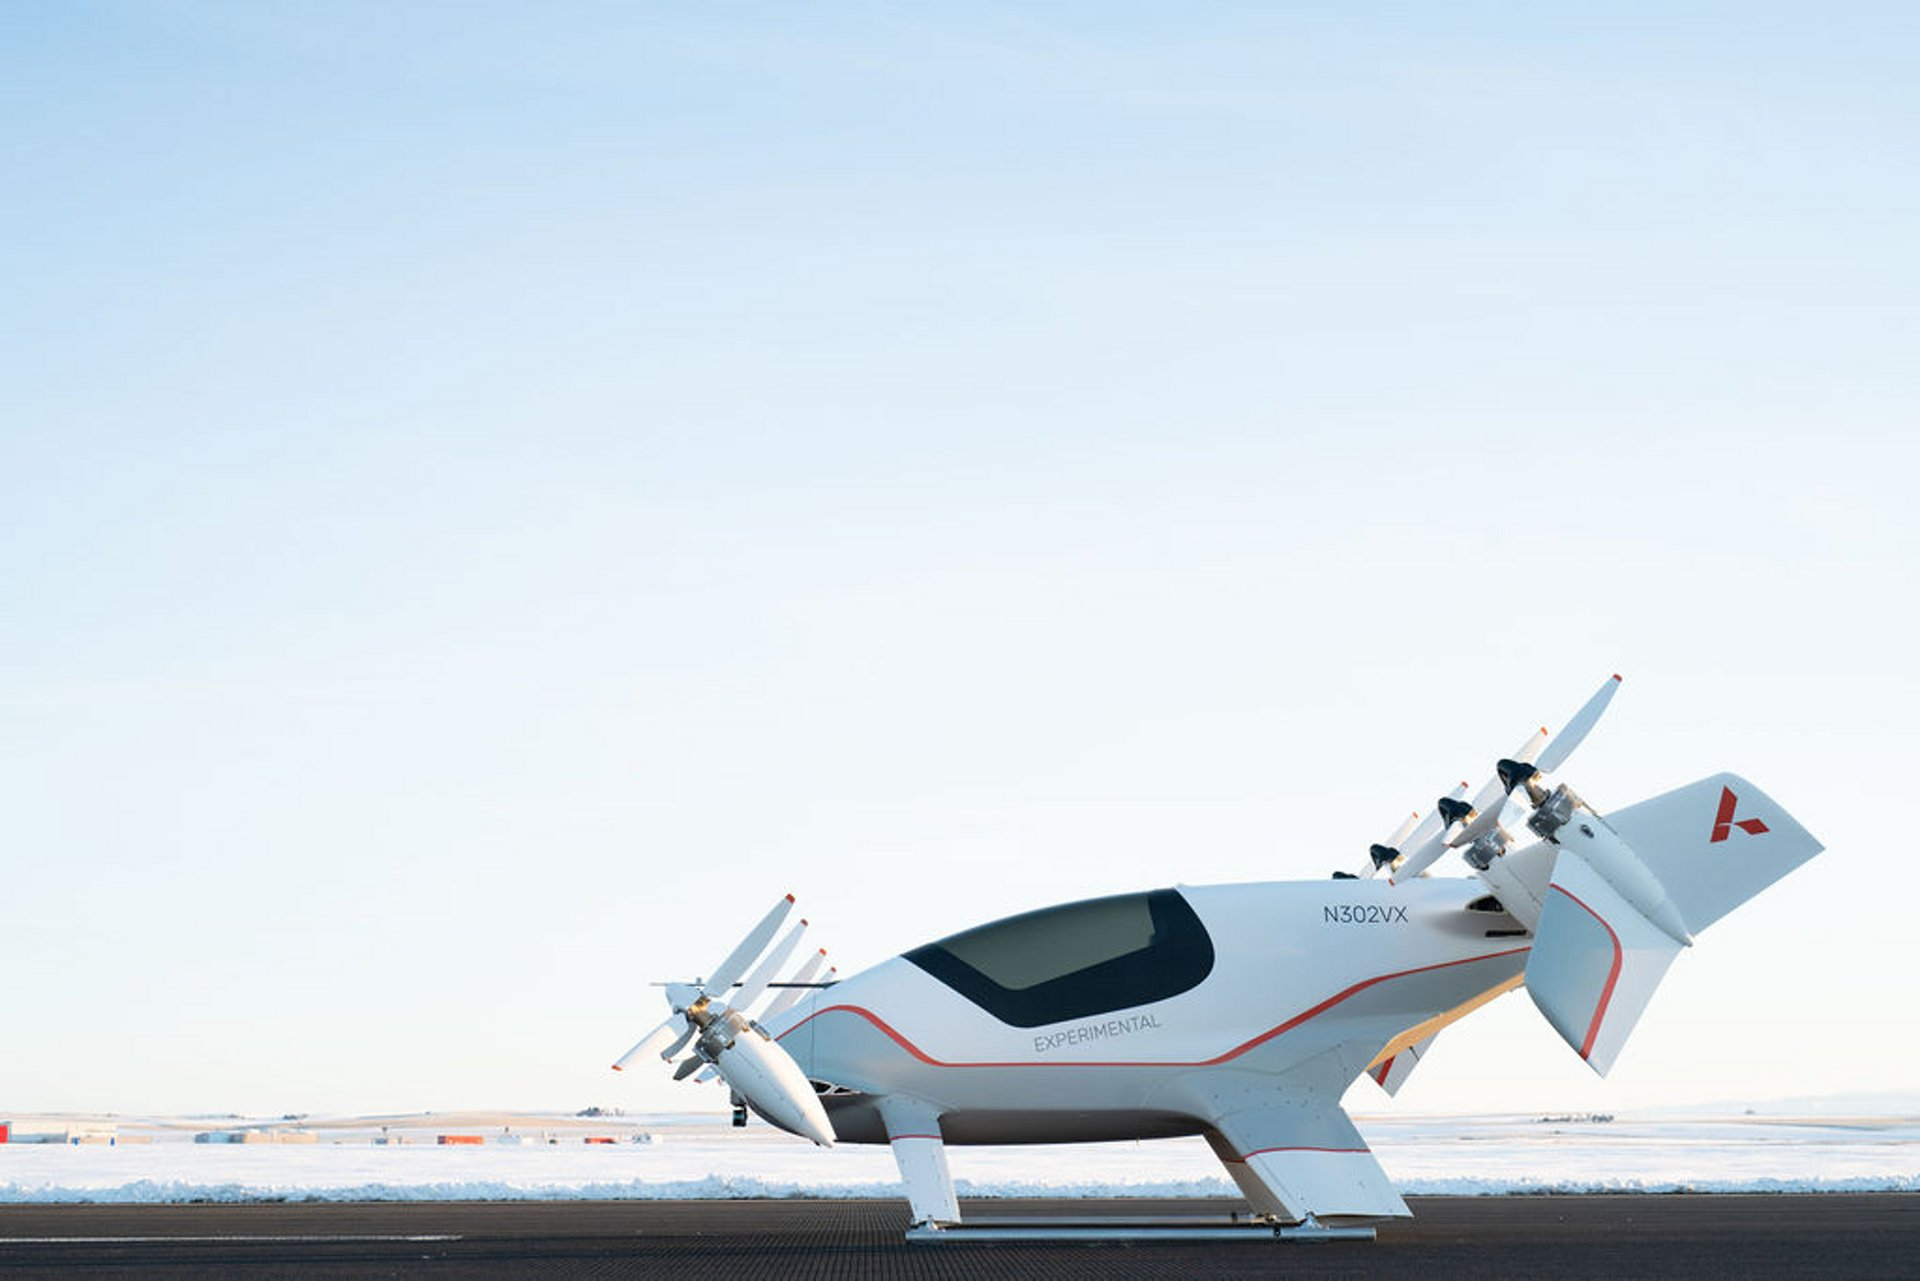 Vahana – an innovative all-electric, single-seat, tilt-wing vehicle demonstrator from Airbus' Silicon Valley outpost, A3 – is advancing the concept of self-piloted vertical-take-off-and-landing flight